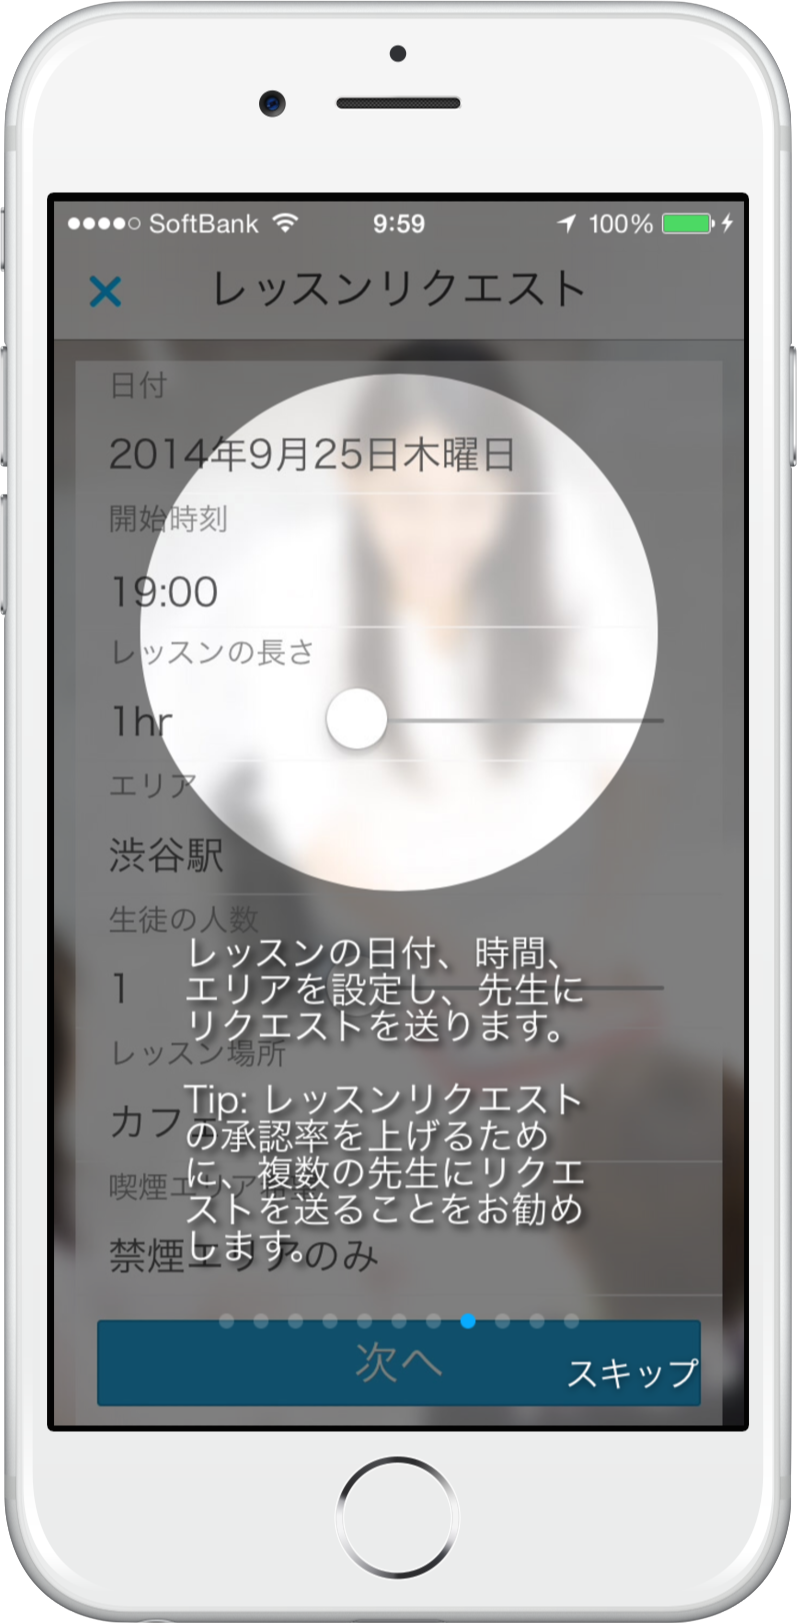 eikaiwaNOW - レッスンの流れ - JPN - 7_iphone6_silver_portrait.png